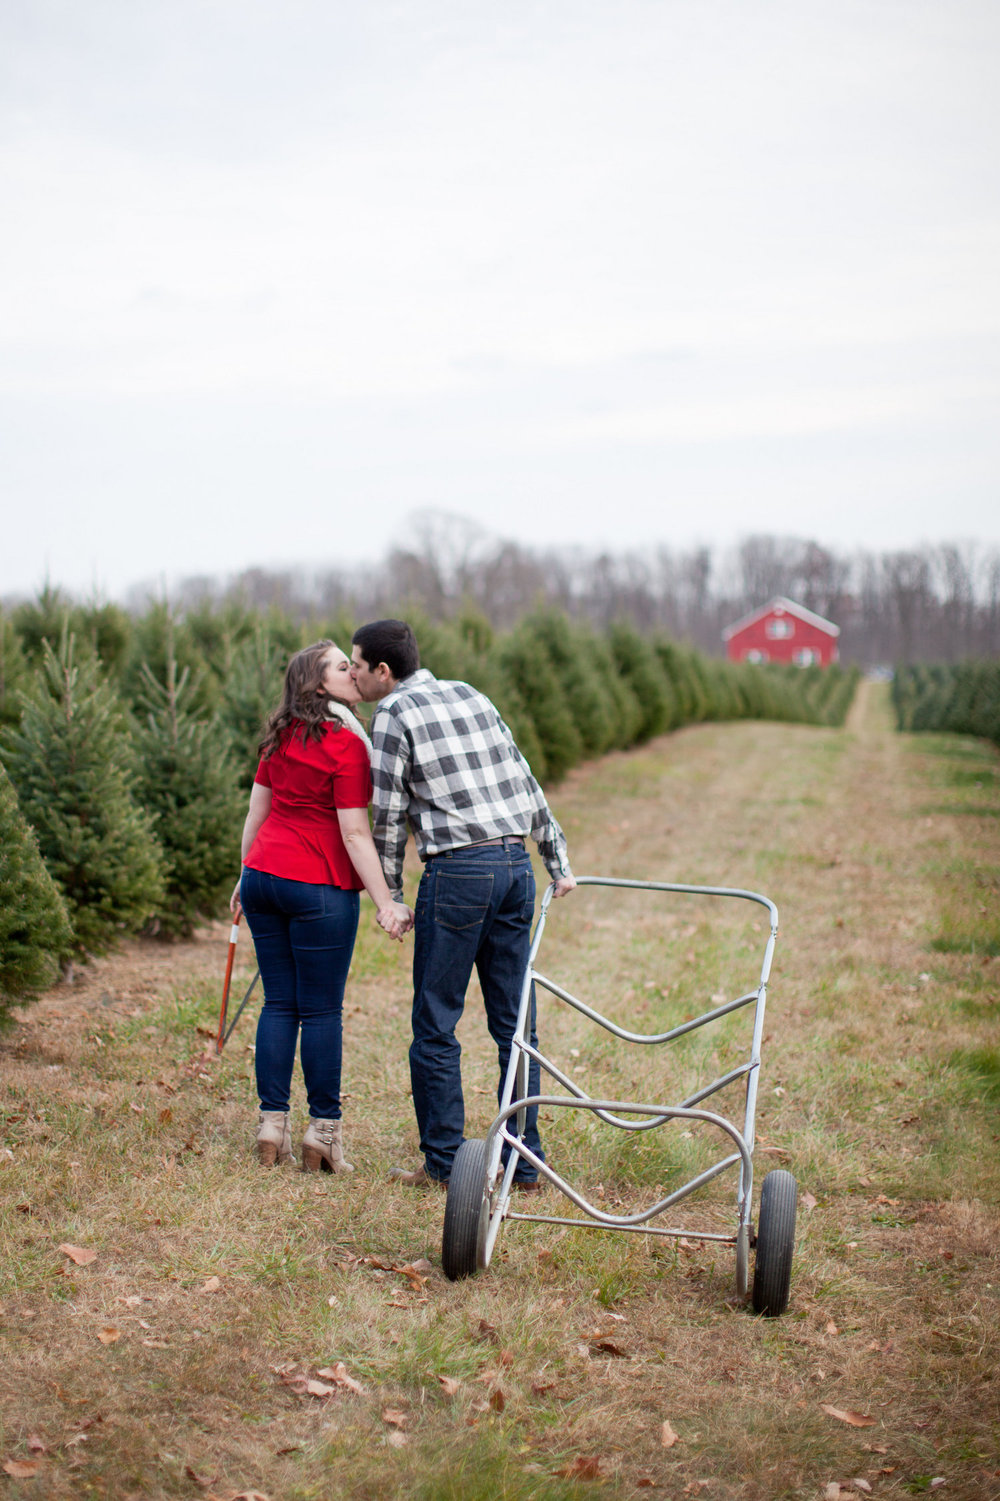 Winter Christmas Tree Farm Engagement Shoot Sincerely Pete Events Liz and Ryan Photography